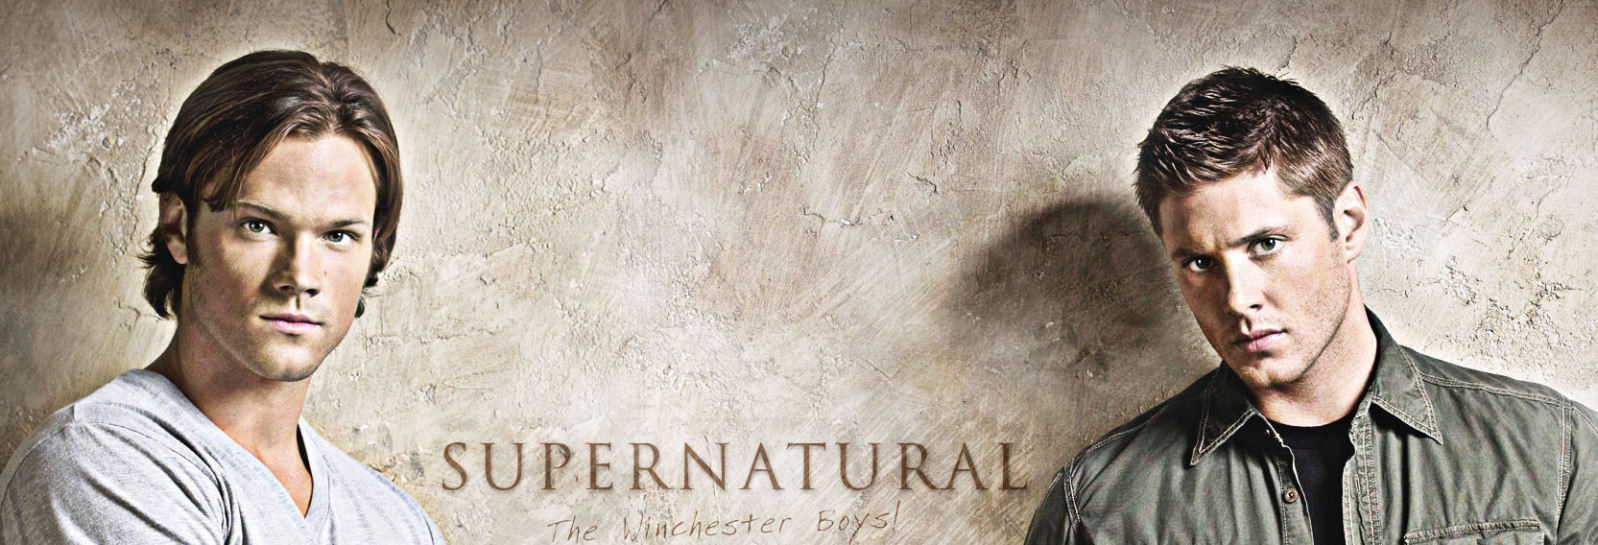 Supernatural S08E18 - 8x18 Legendado